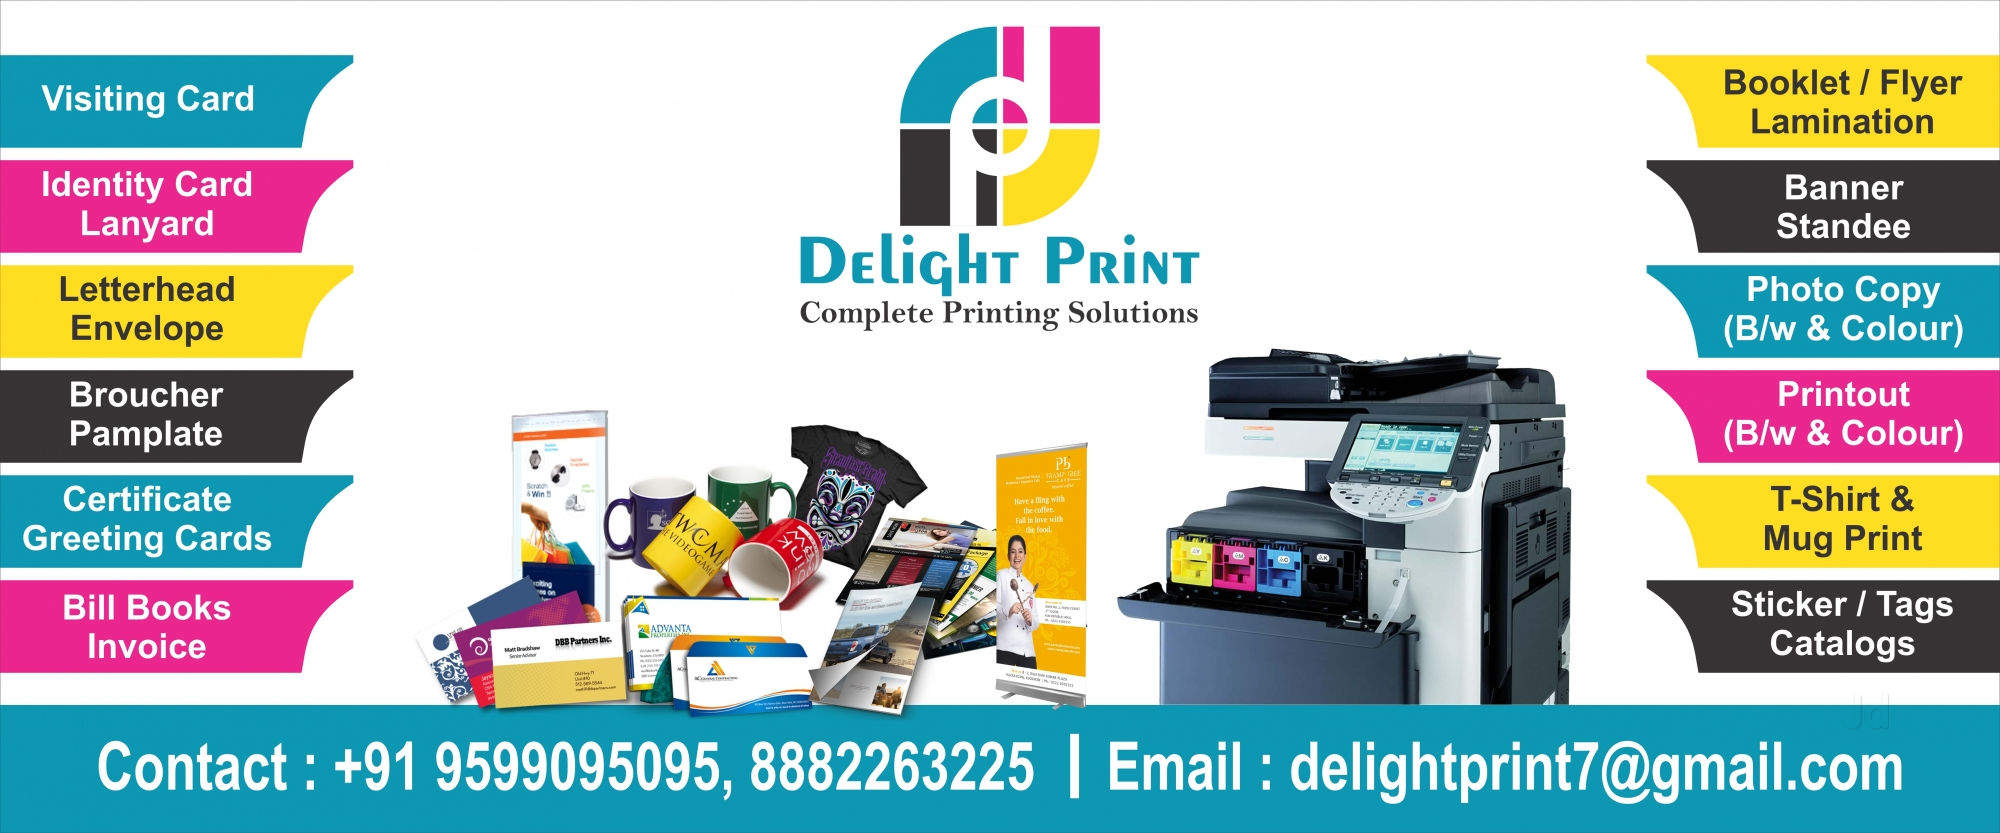 Top greeting card printers in raj nagar ghaziabad best printing greeting card printers in raj nagar ghaziabad delhi m4hsunfo